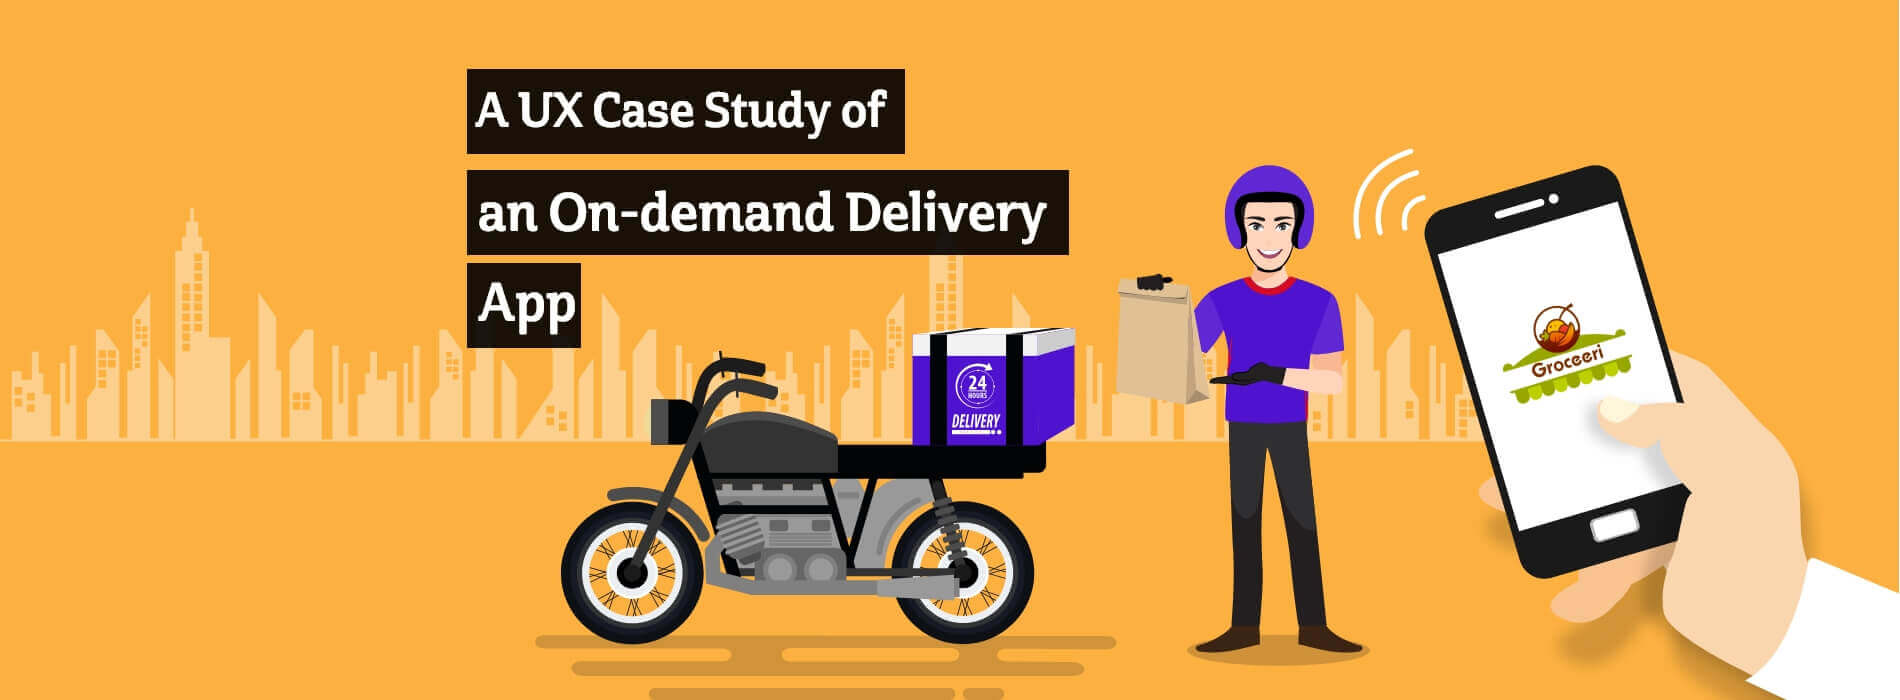 UX Case Study of an On-demand Delivery App - Groceeri